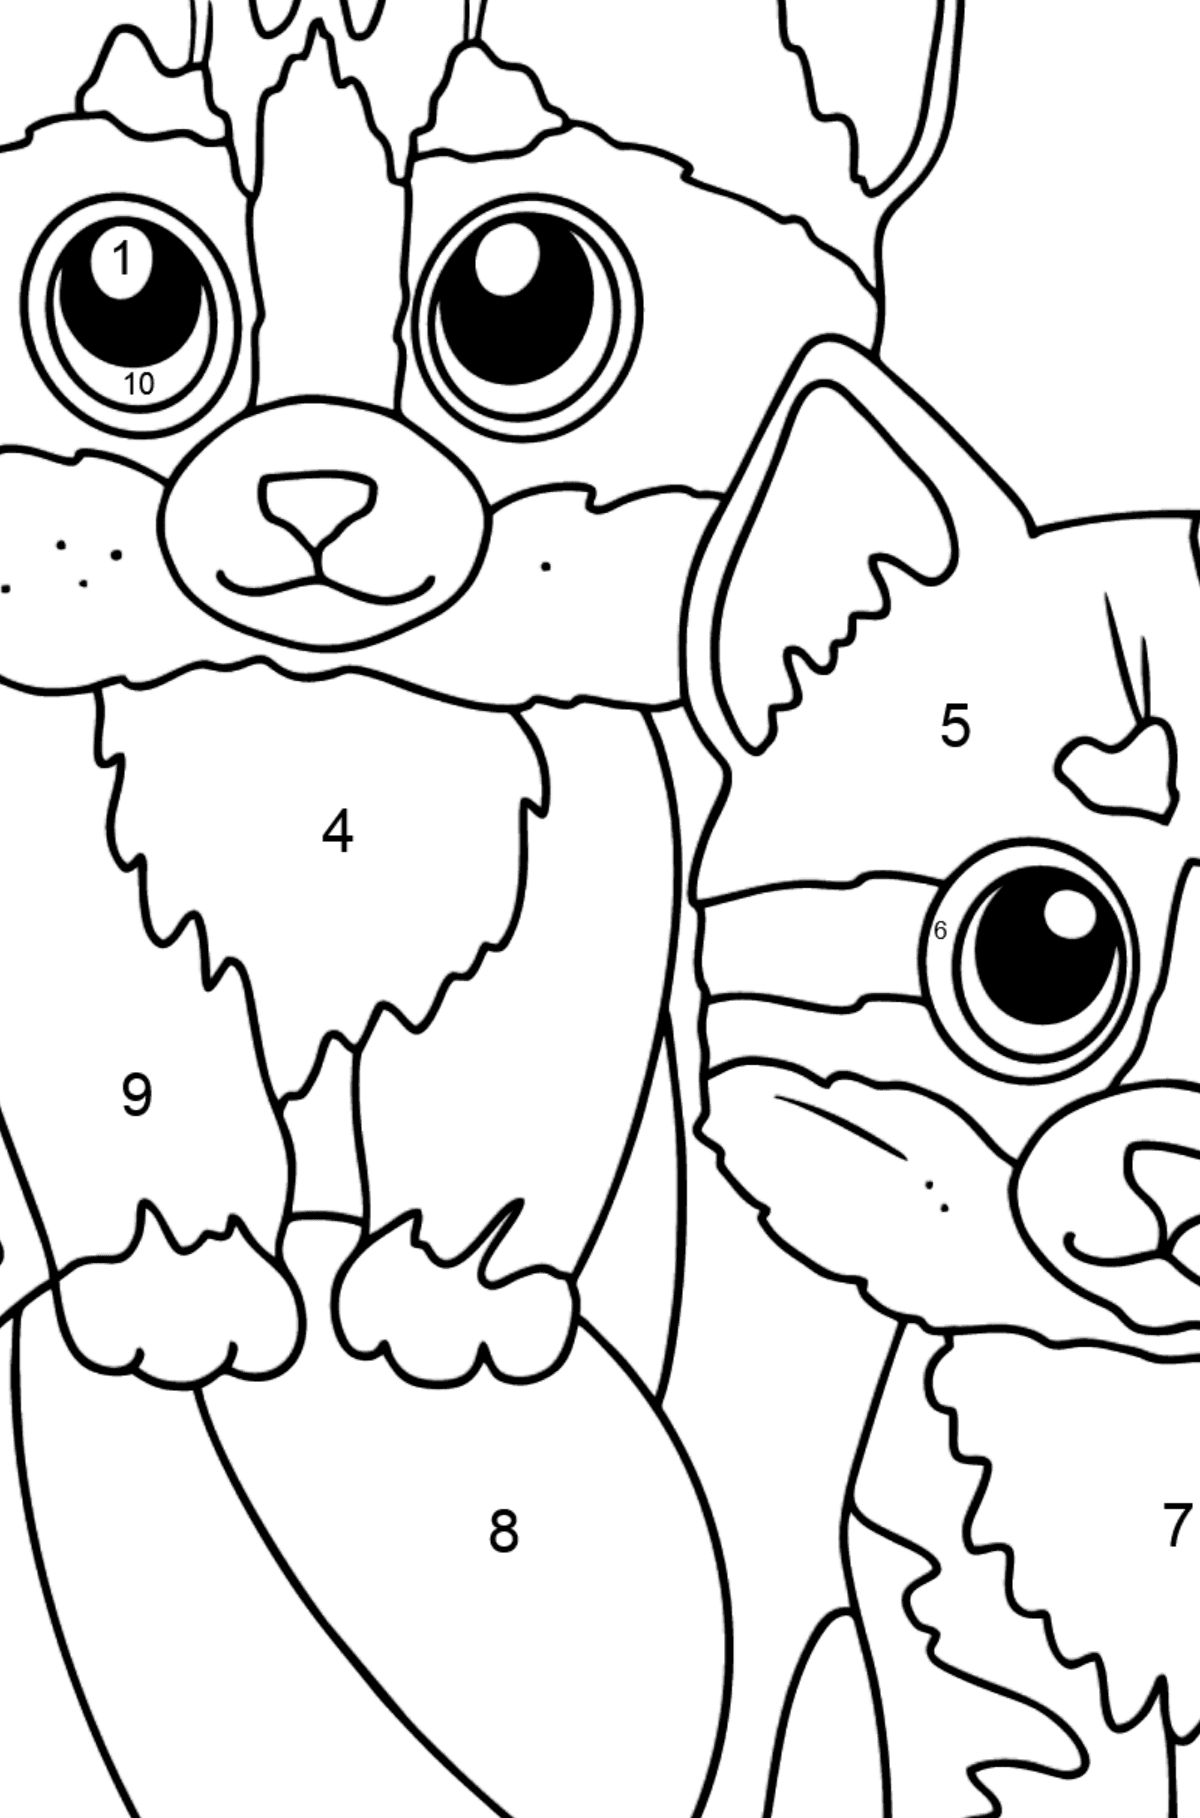 Coloring Page - Two Friendly Kittens Playing with a Ball - Coloring by Numbers for Kids